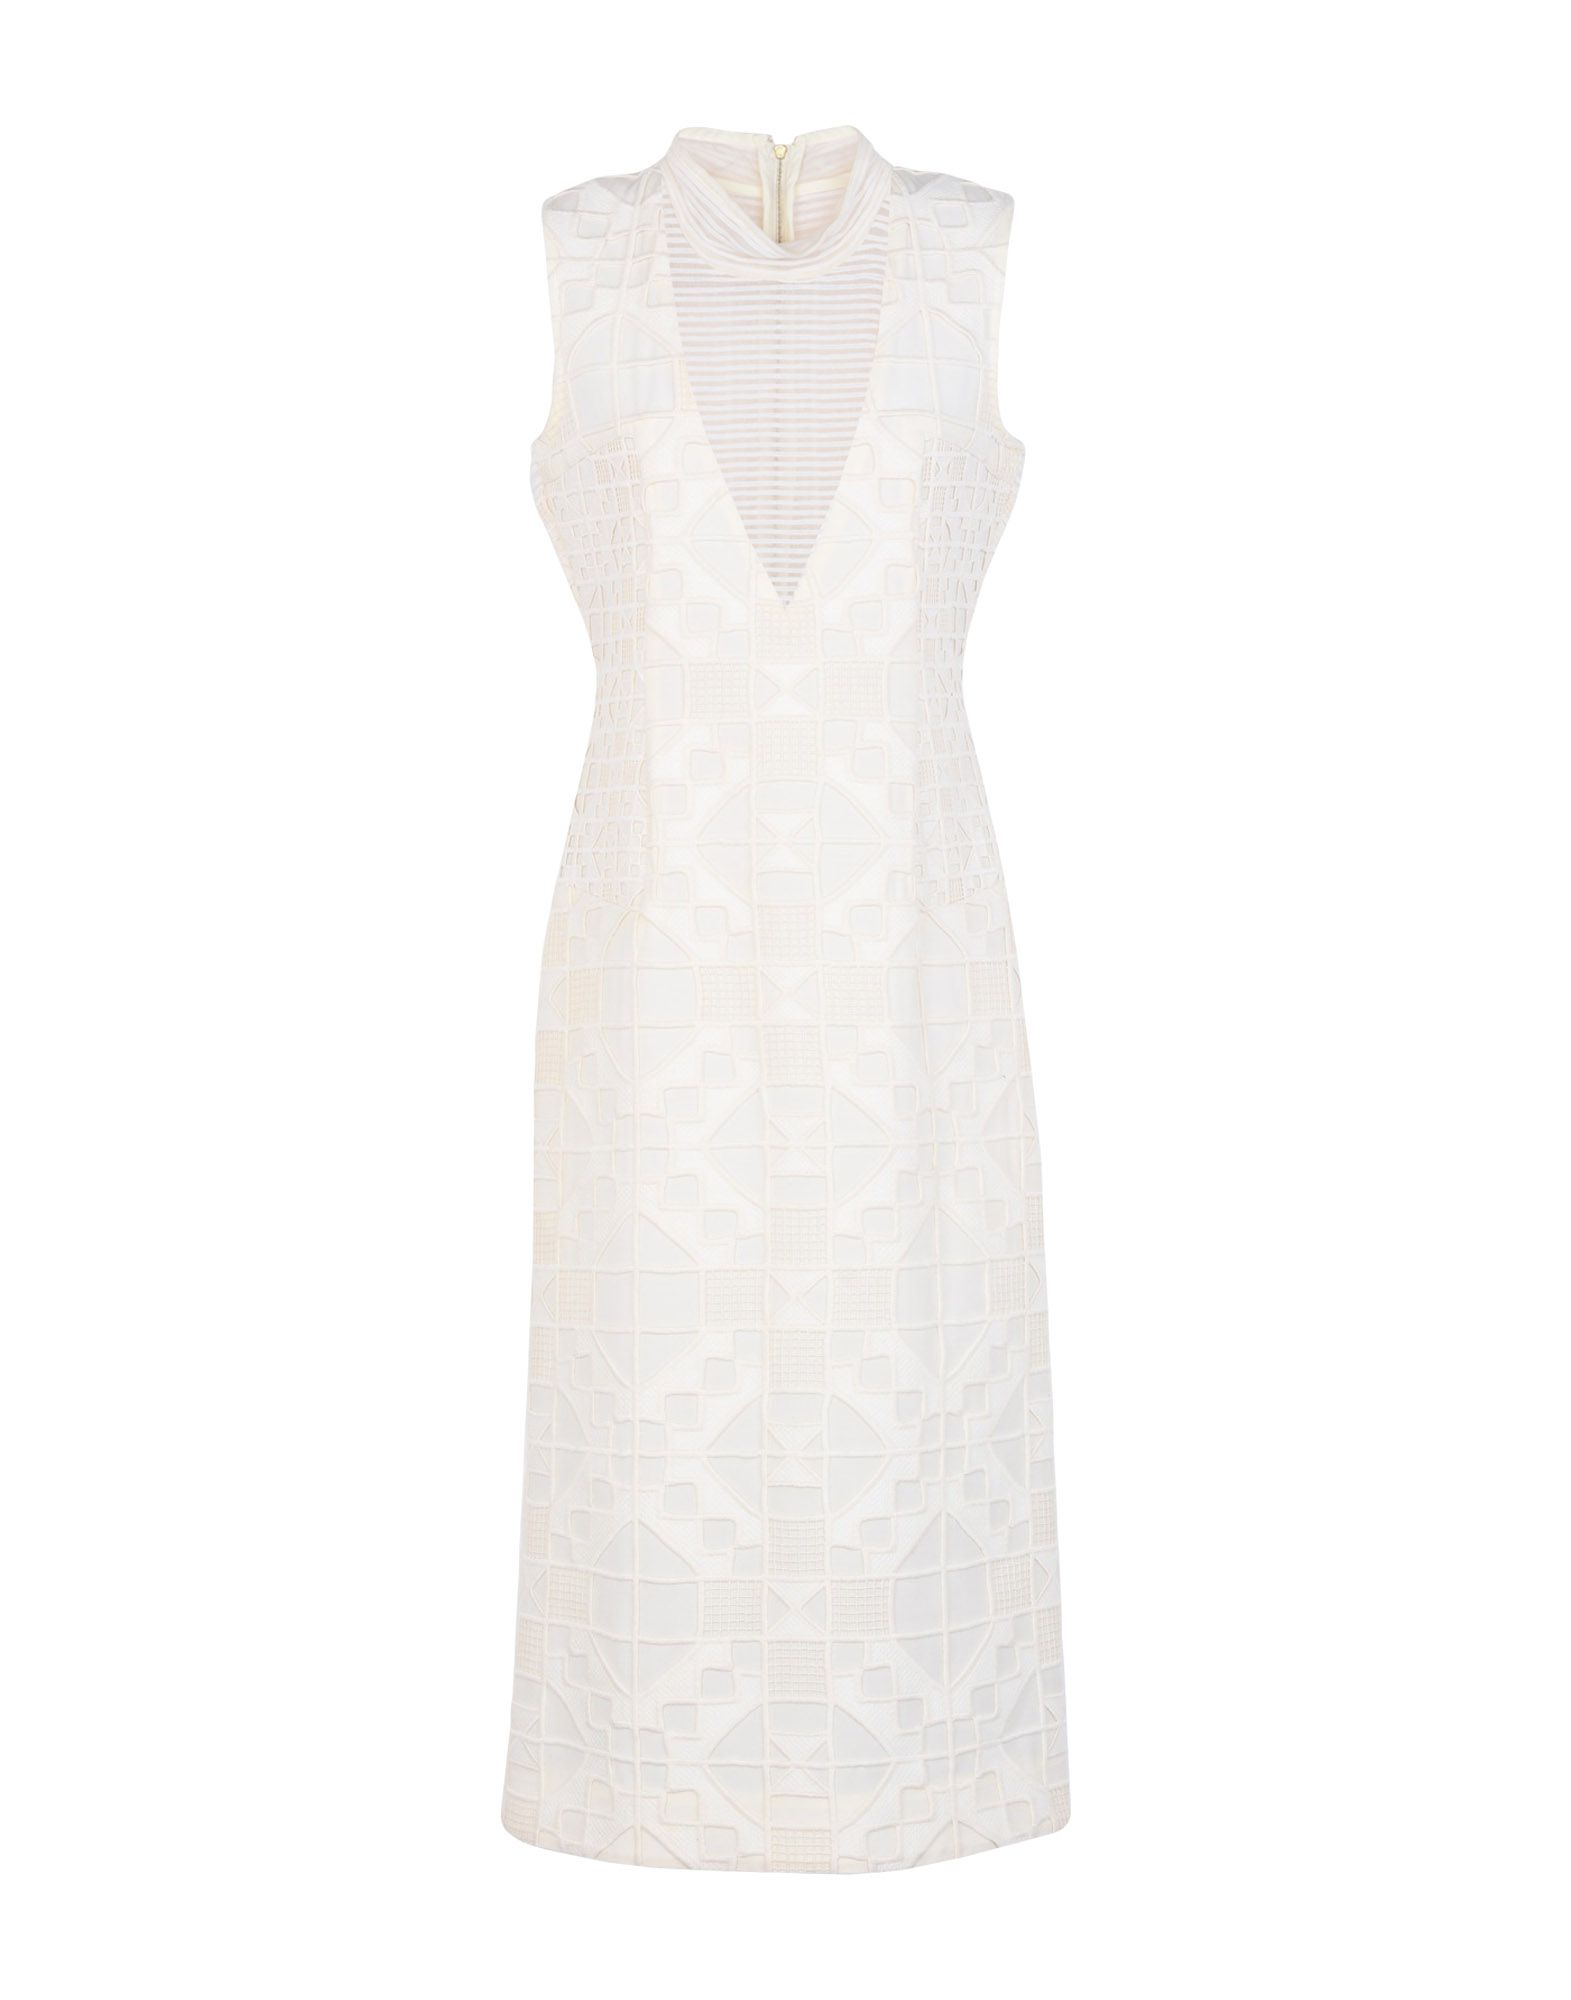 TEATUM JONES 3/4 Length Dresses in Ivory